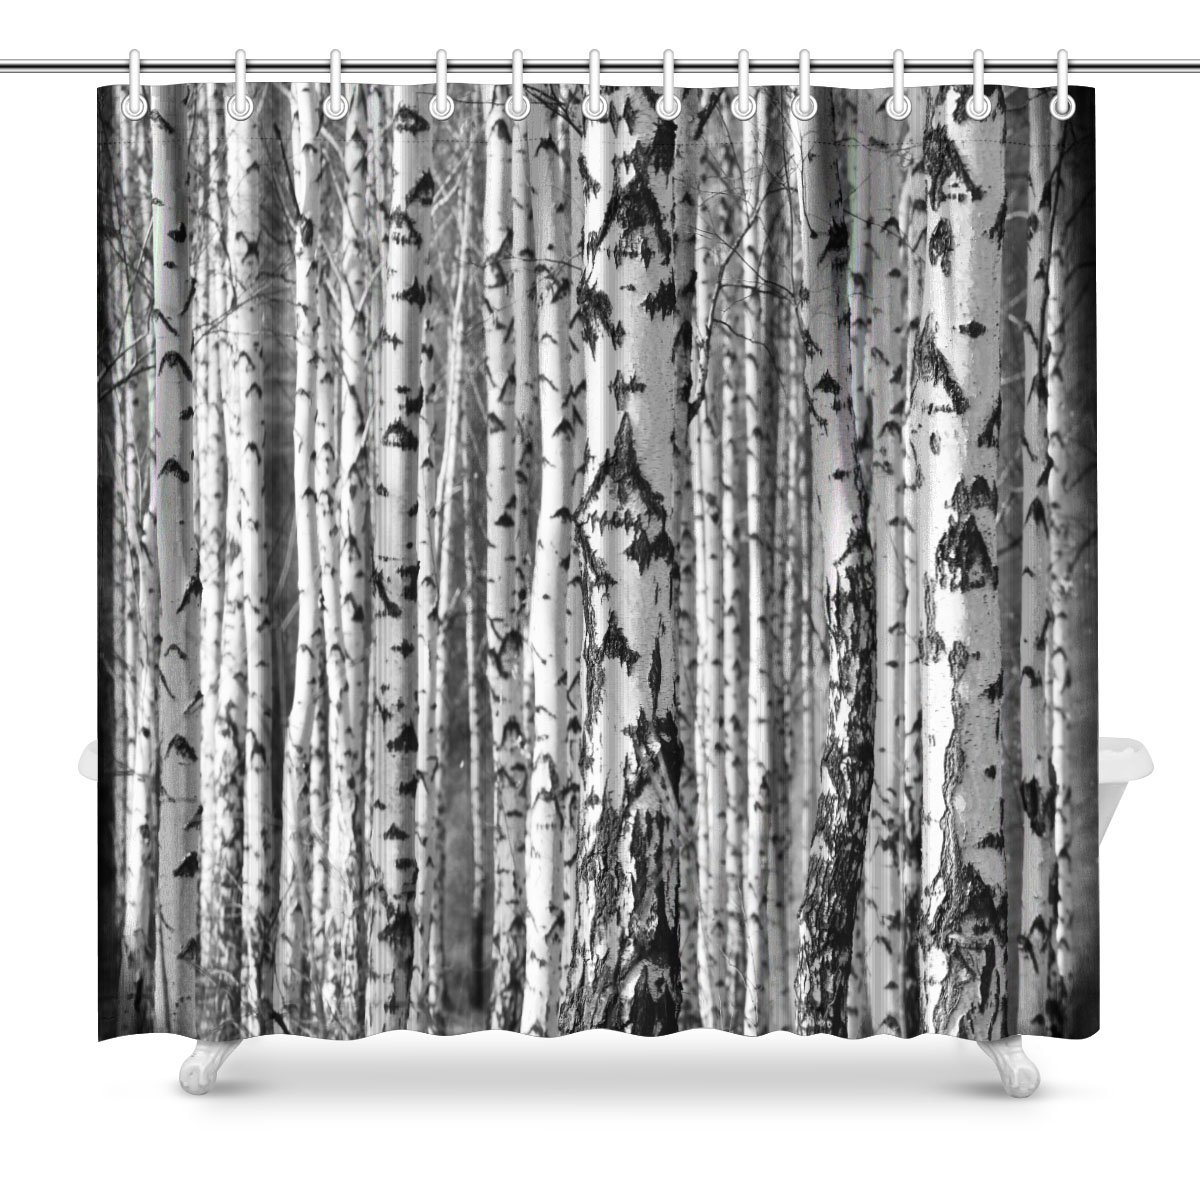 Birch Trees Trunks Black And White Natural Art Decor Shower Curtain Extra Long